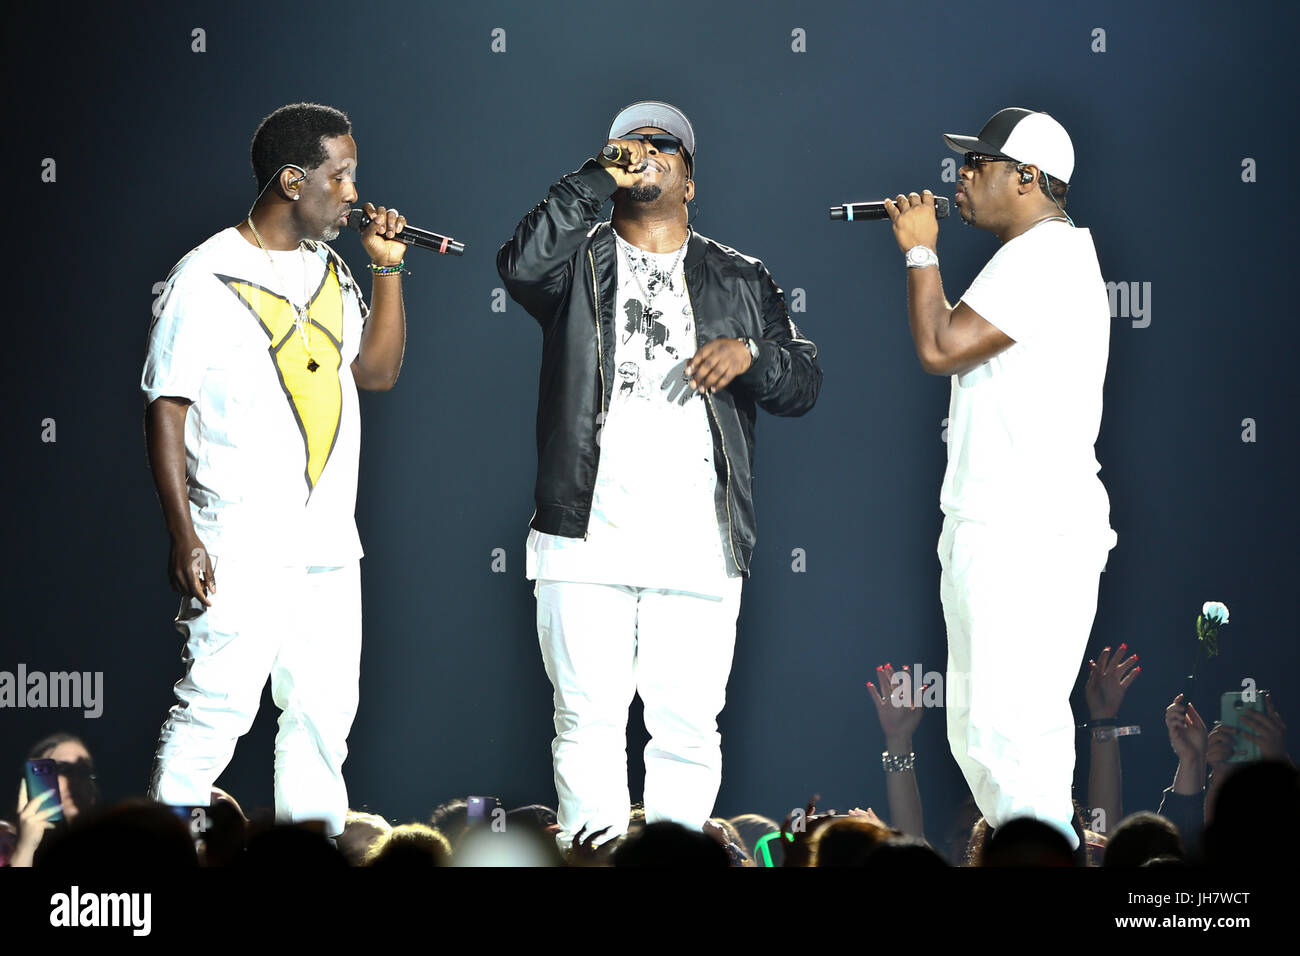 NEW YORK-JUL 7: (L-R) Shawn Stockman, Wanya Morris and Nathan Morris of Boyz II Men perform during The Total Package - Stock Image